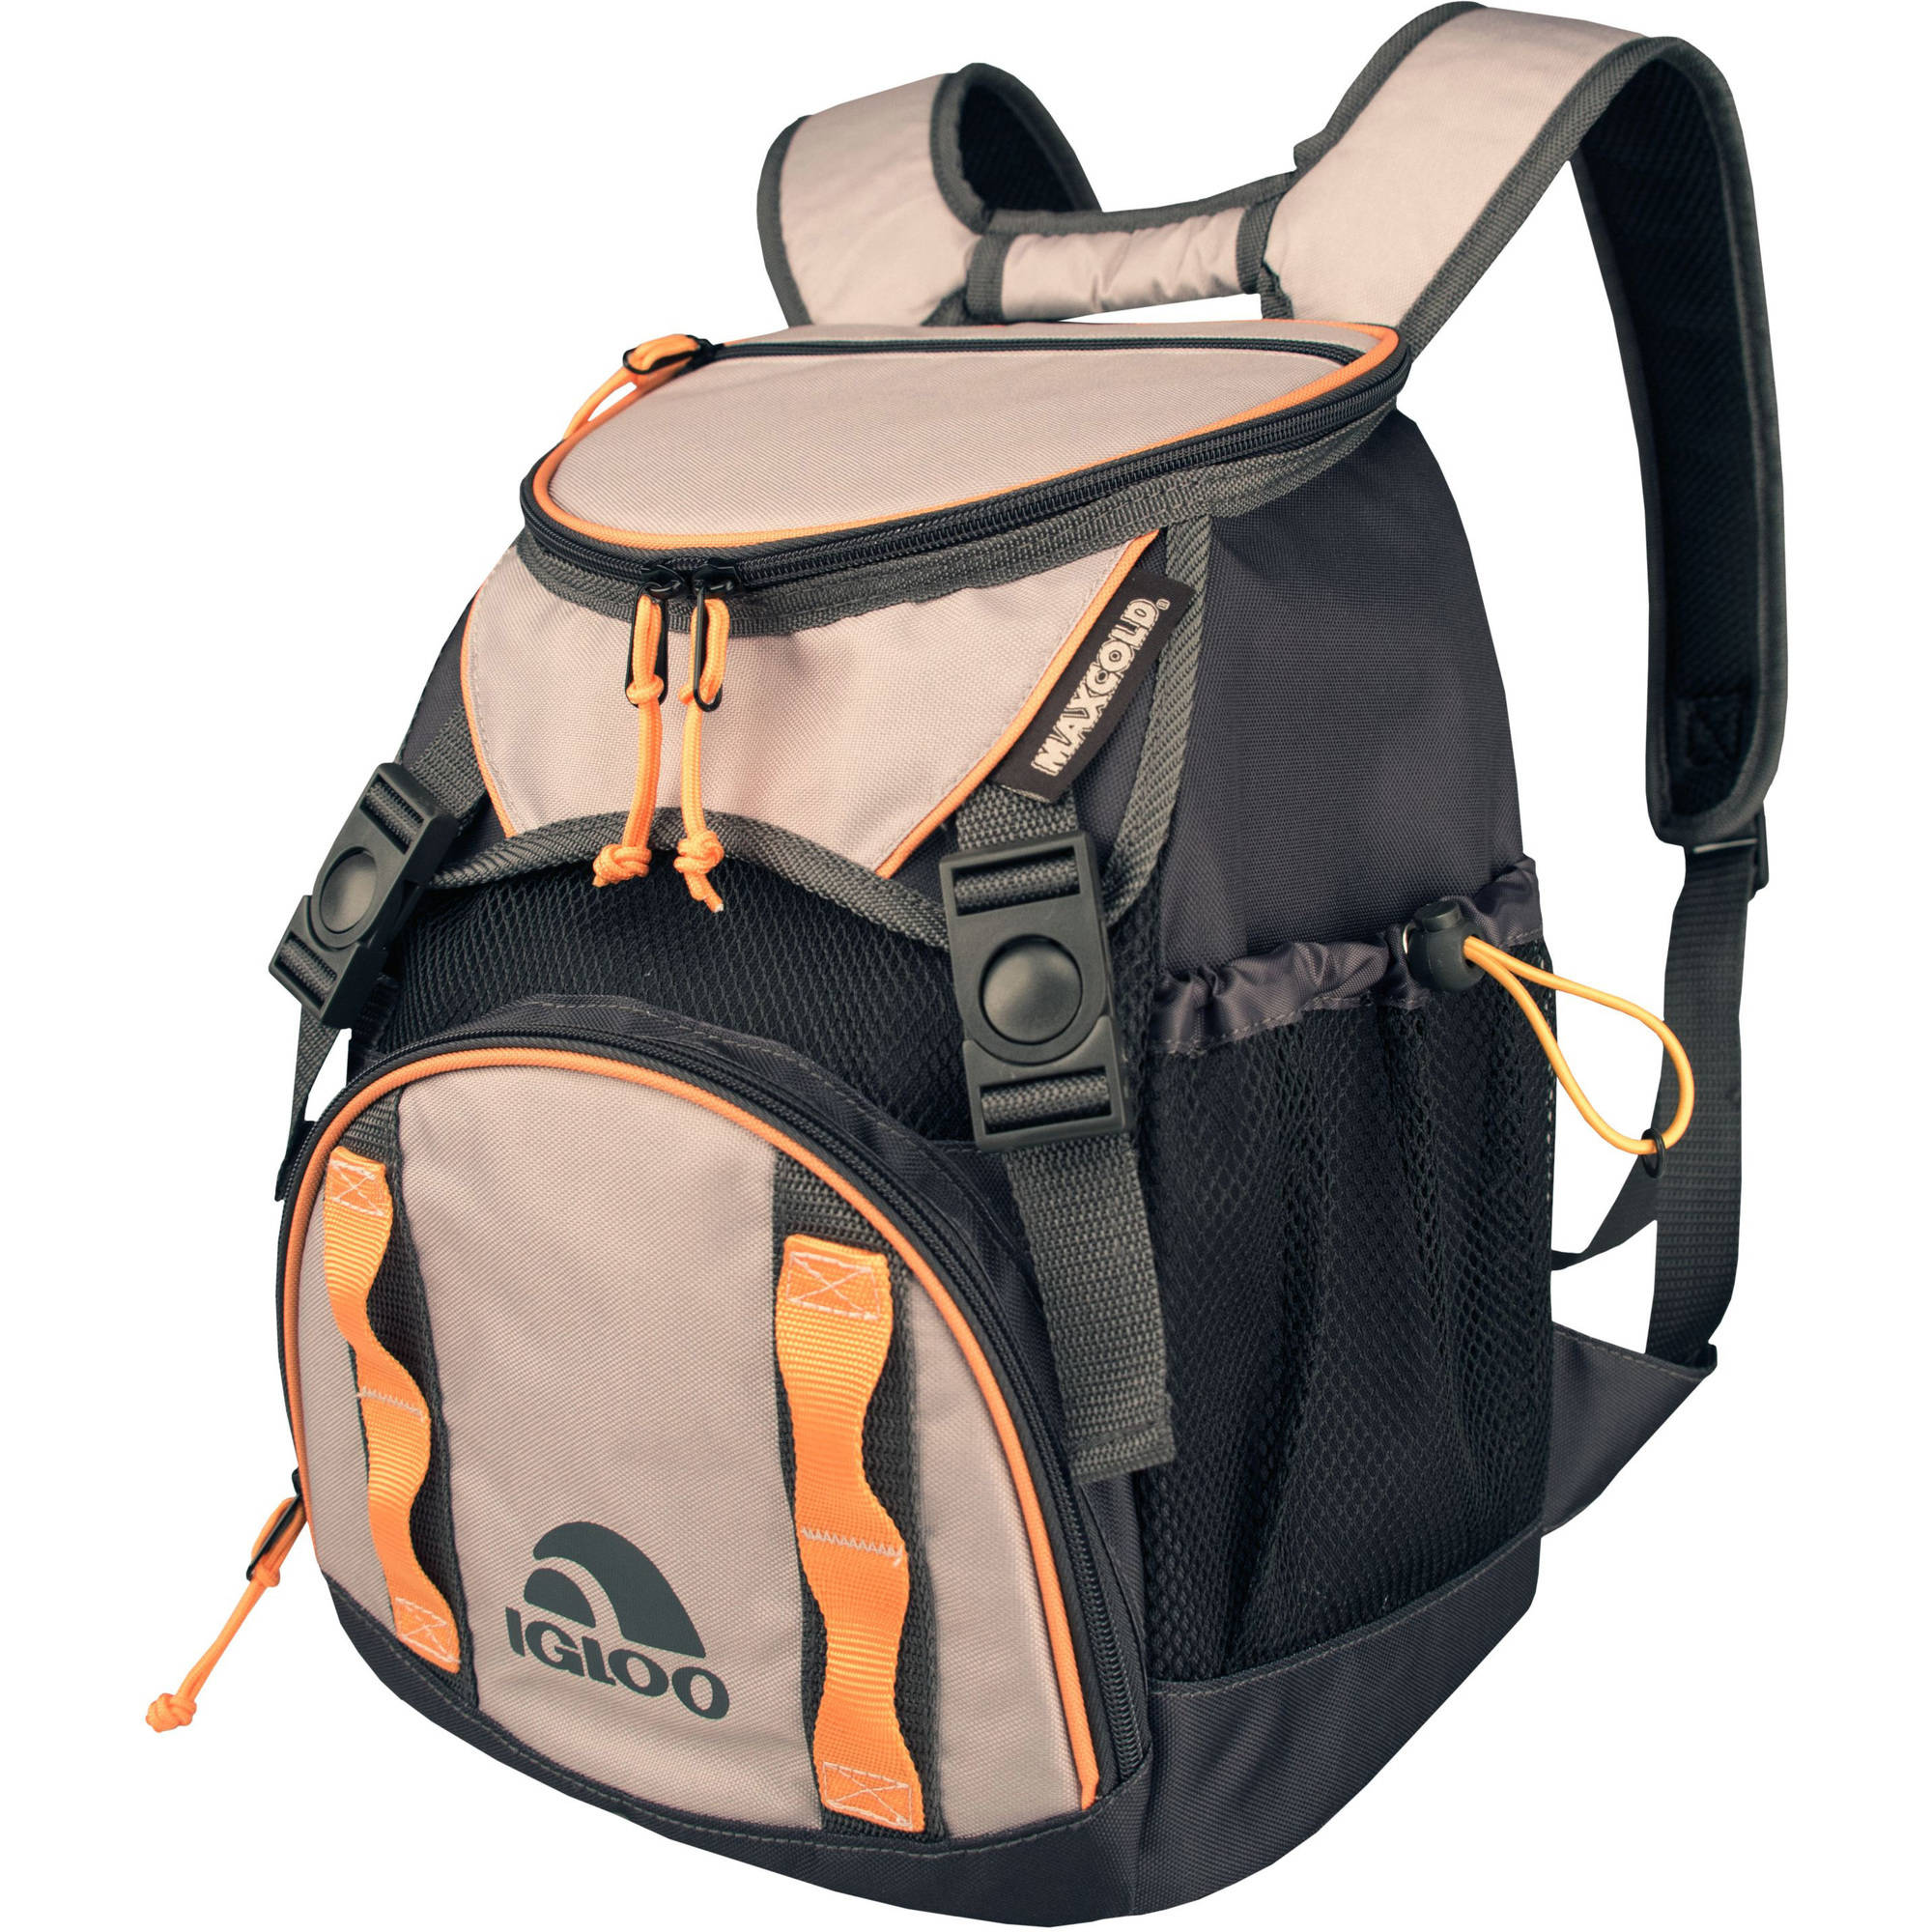 igloo backpack cooler - Backpack Coolers